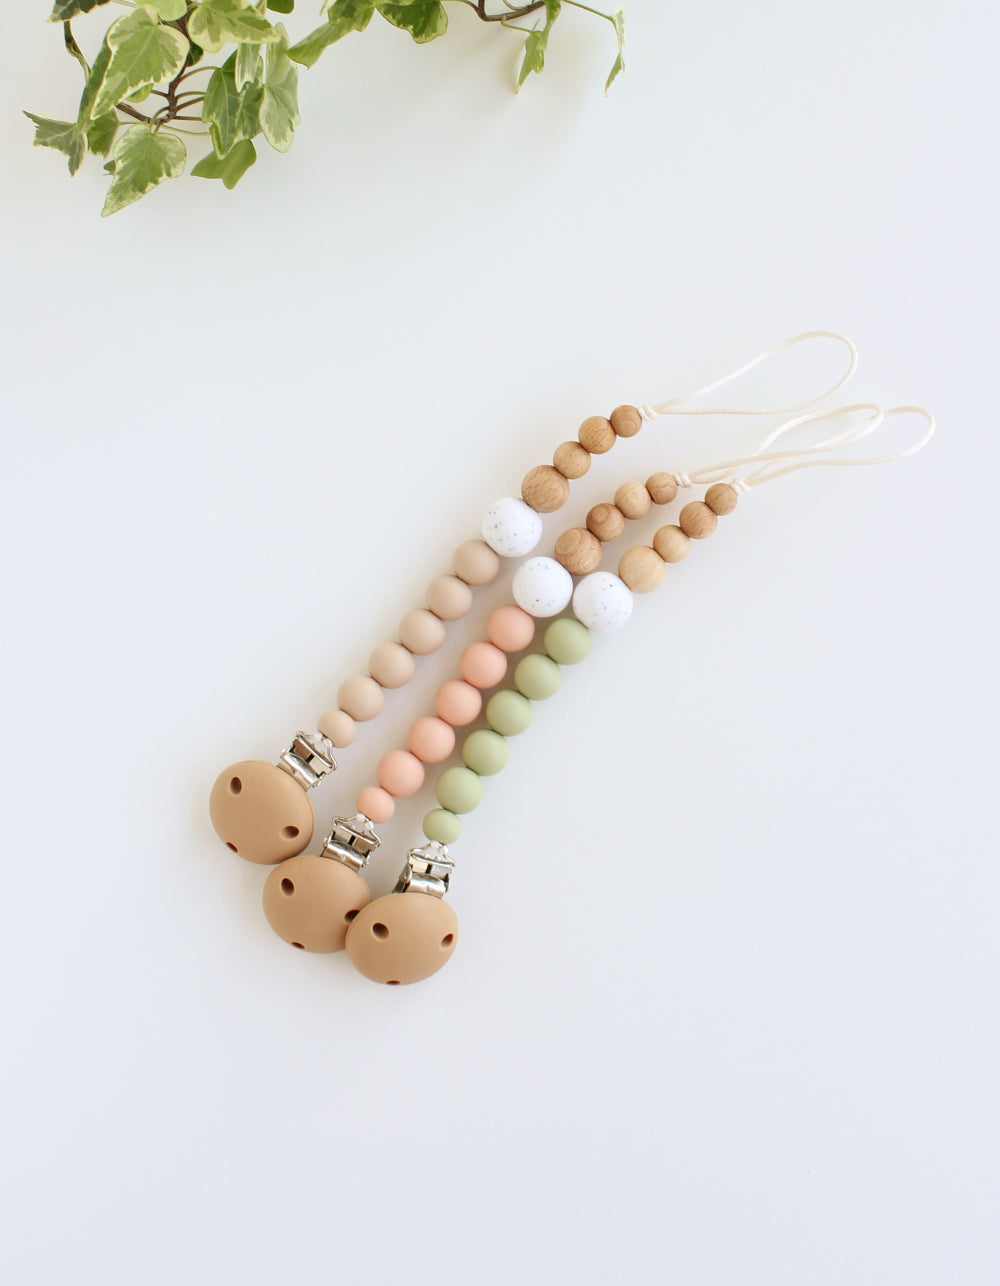 silicone and wood pacifier clip for BIBS soother vanilla peach sage white